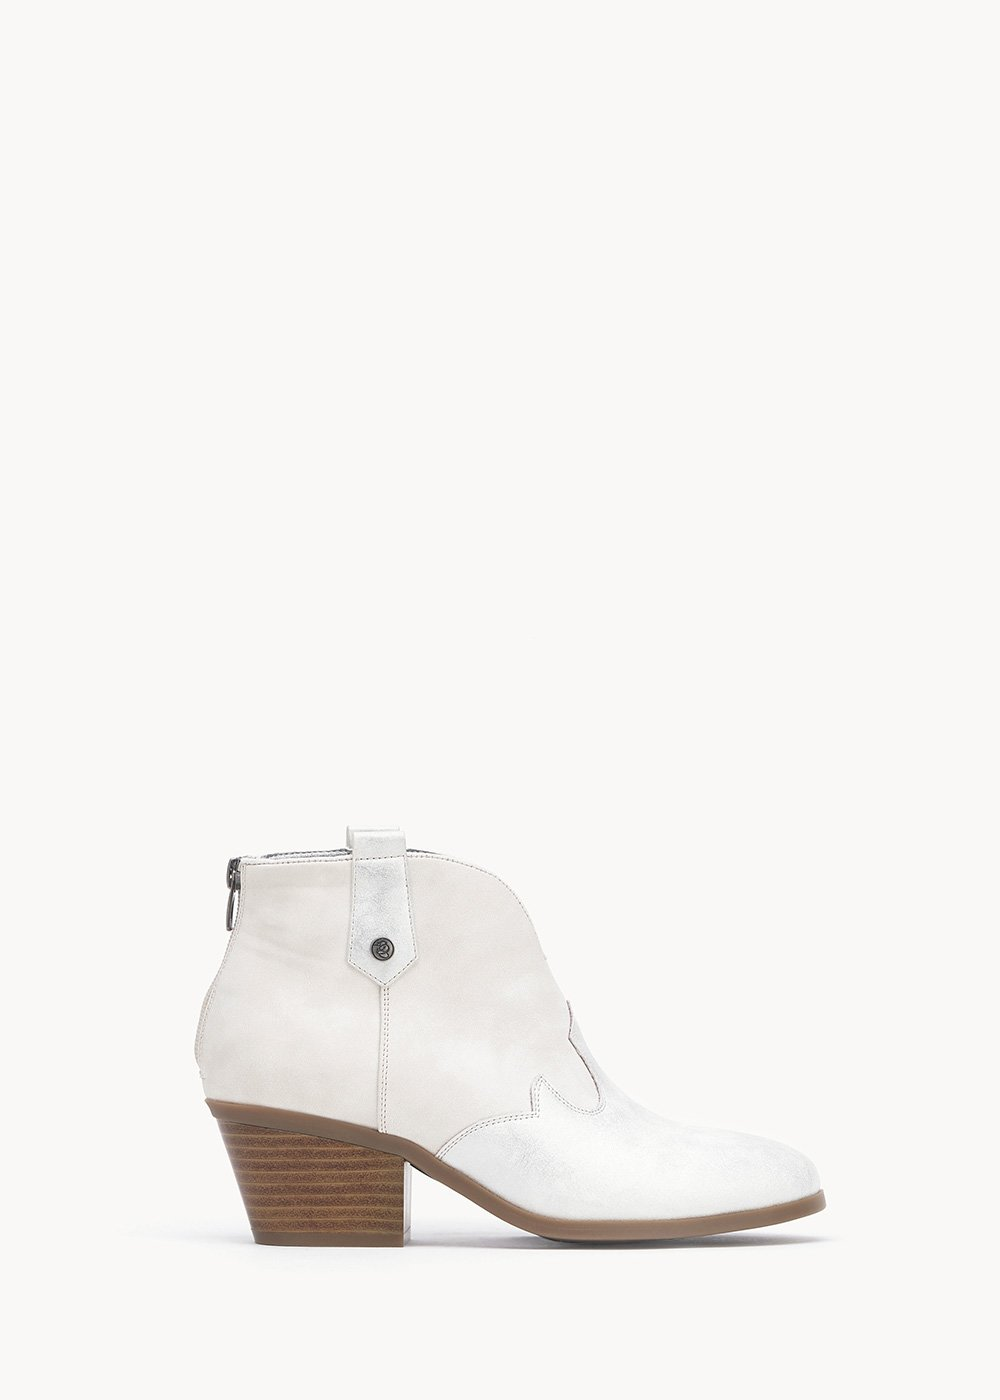 Sunny cowboy boots - Cocco / Silver	 - Woman